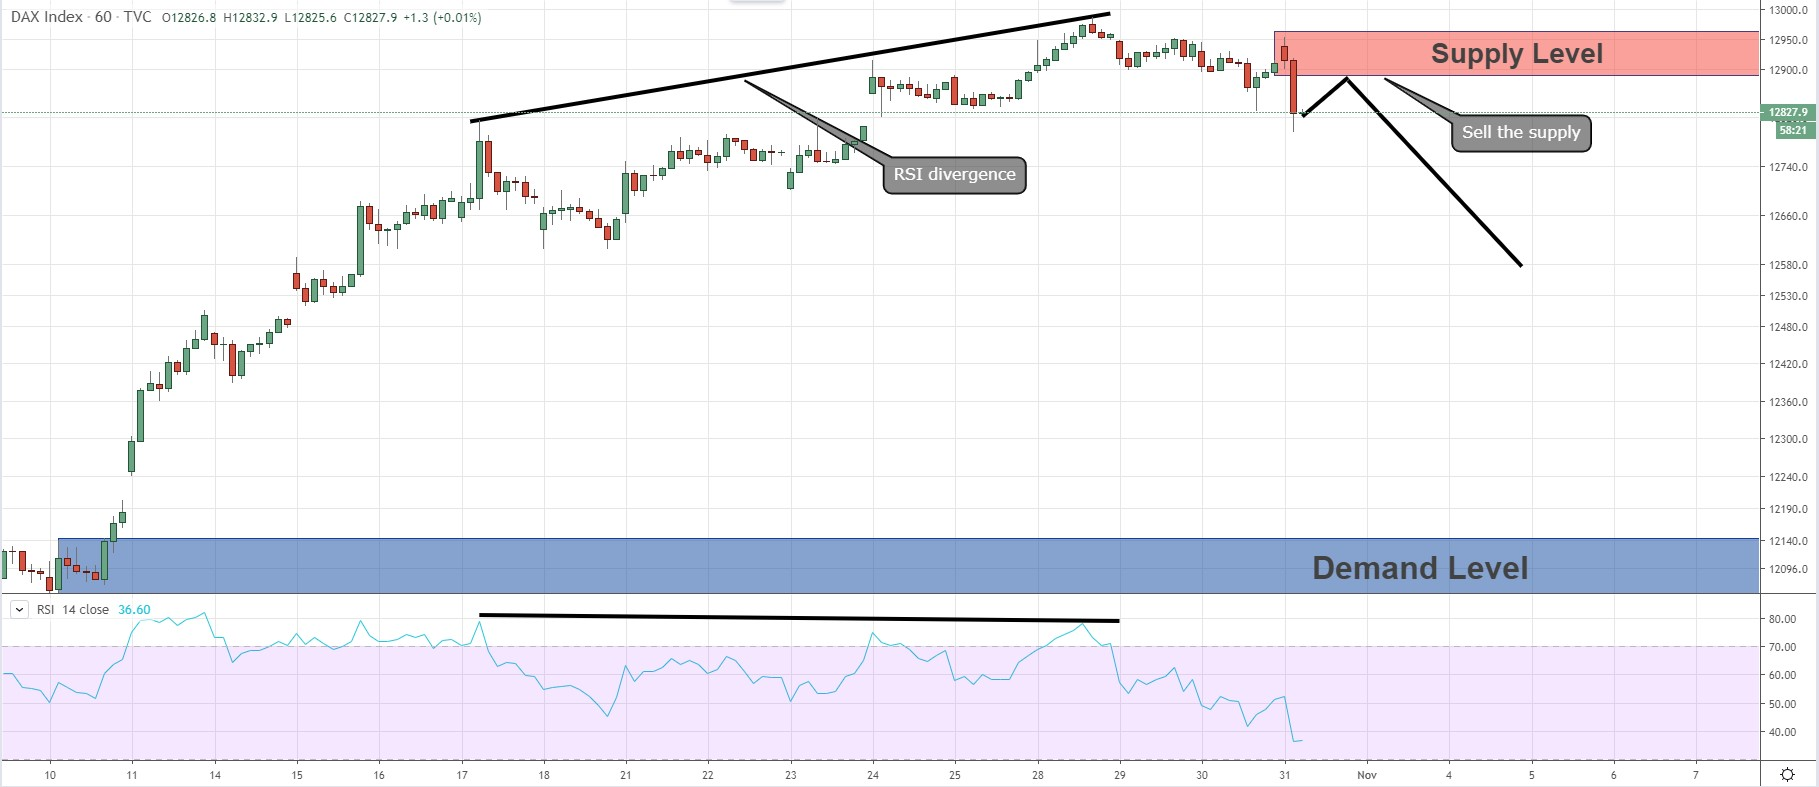 DAX - RSI Divergence